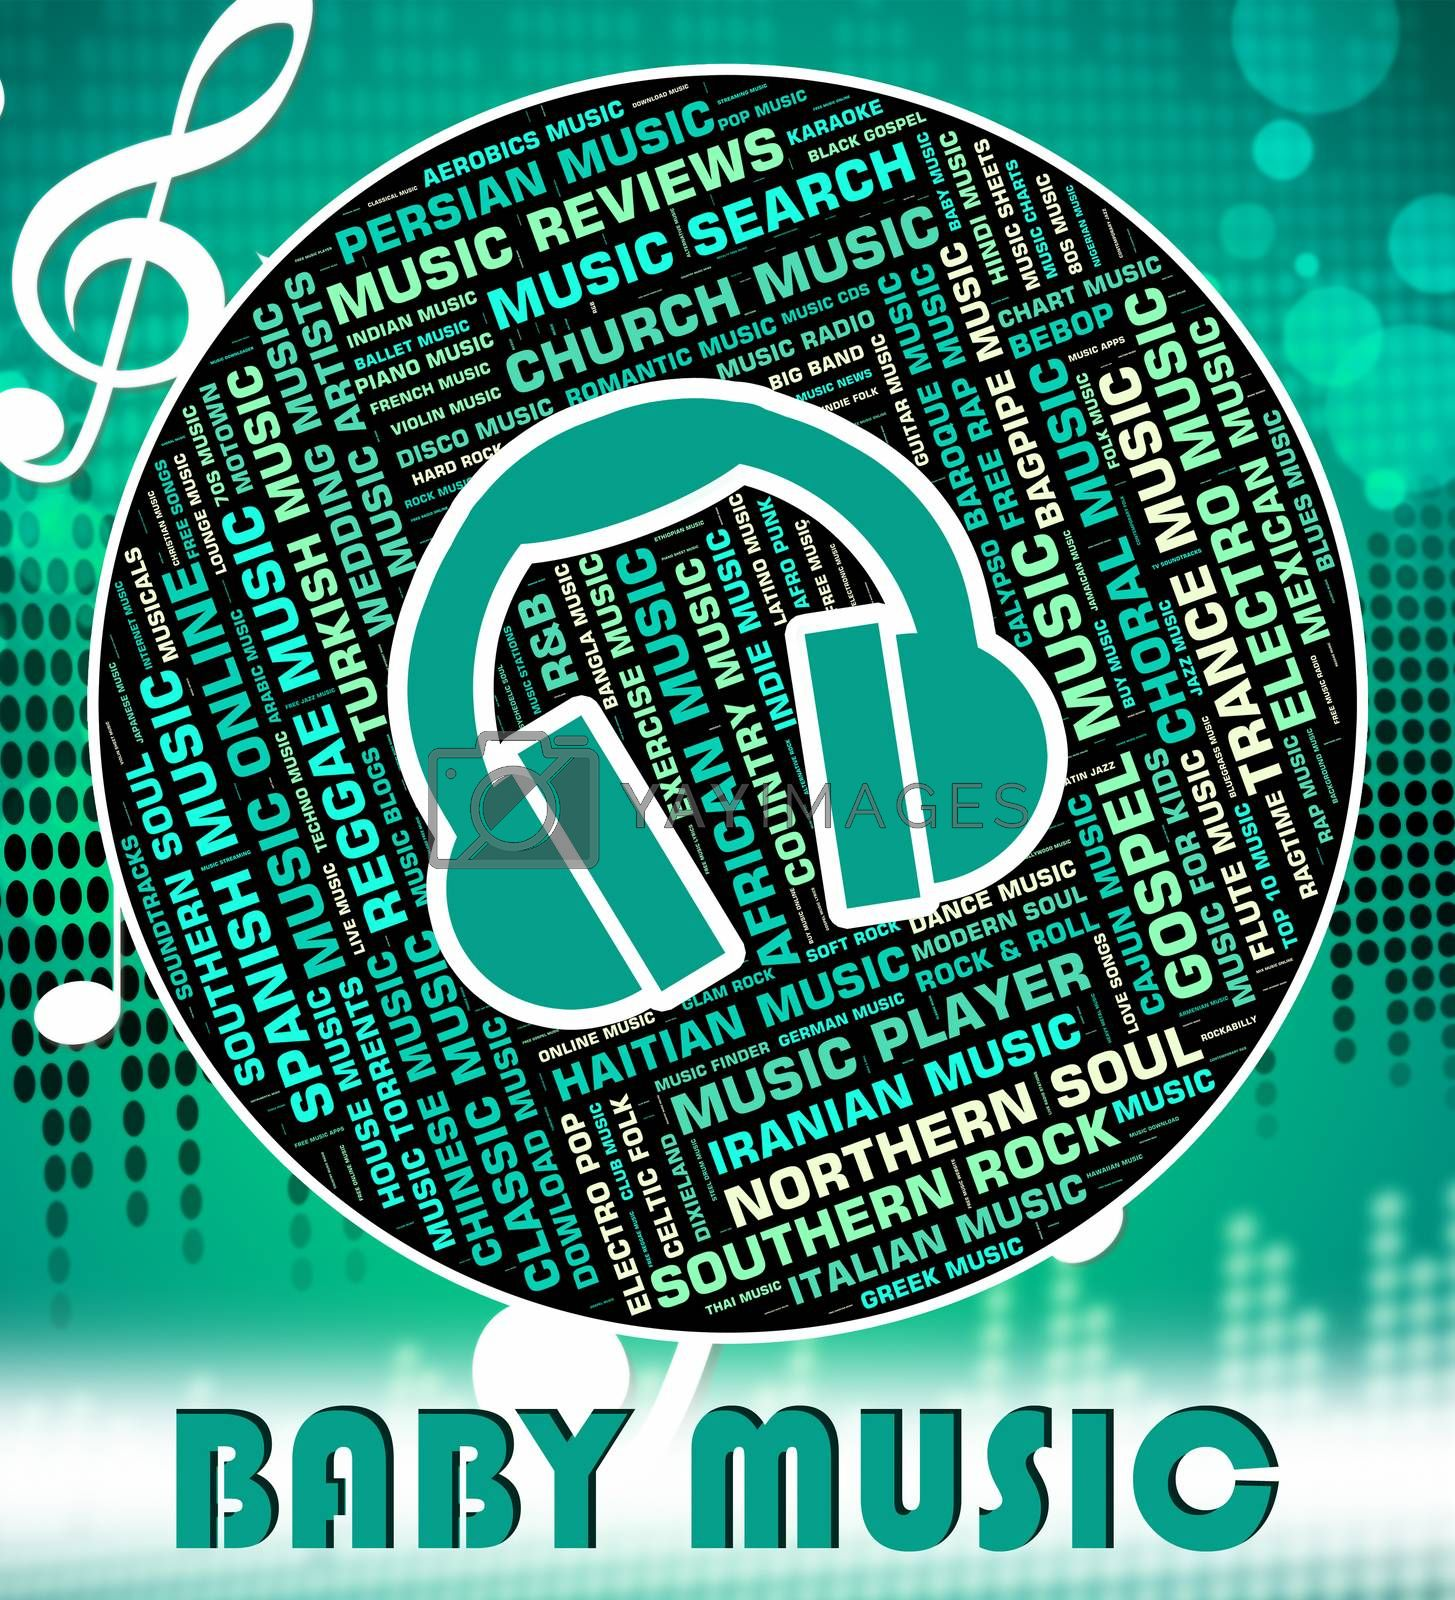 Baby Music Meaning Sound Track And Babies